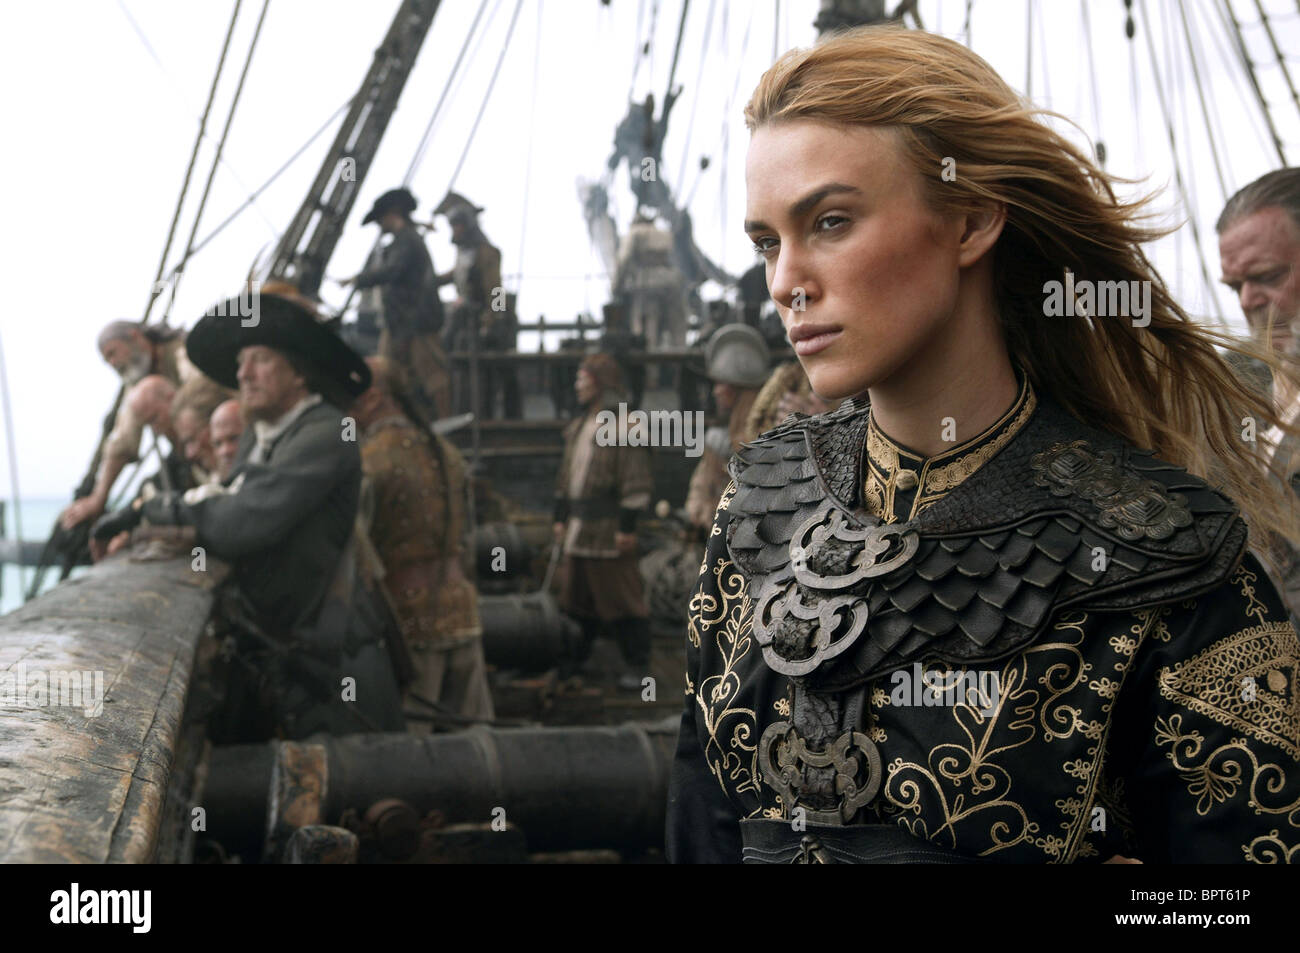 Keira Knightley Pirates Of The Caribbean At Worlds End Fluch Der